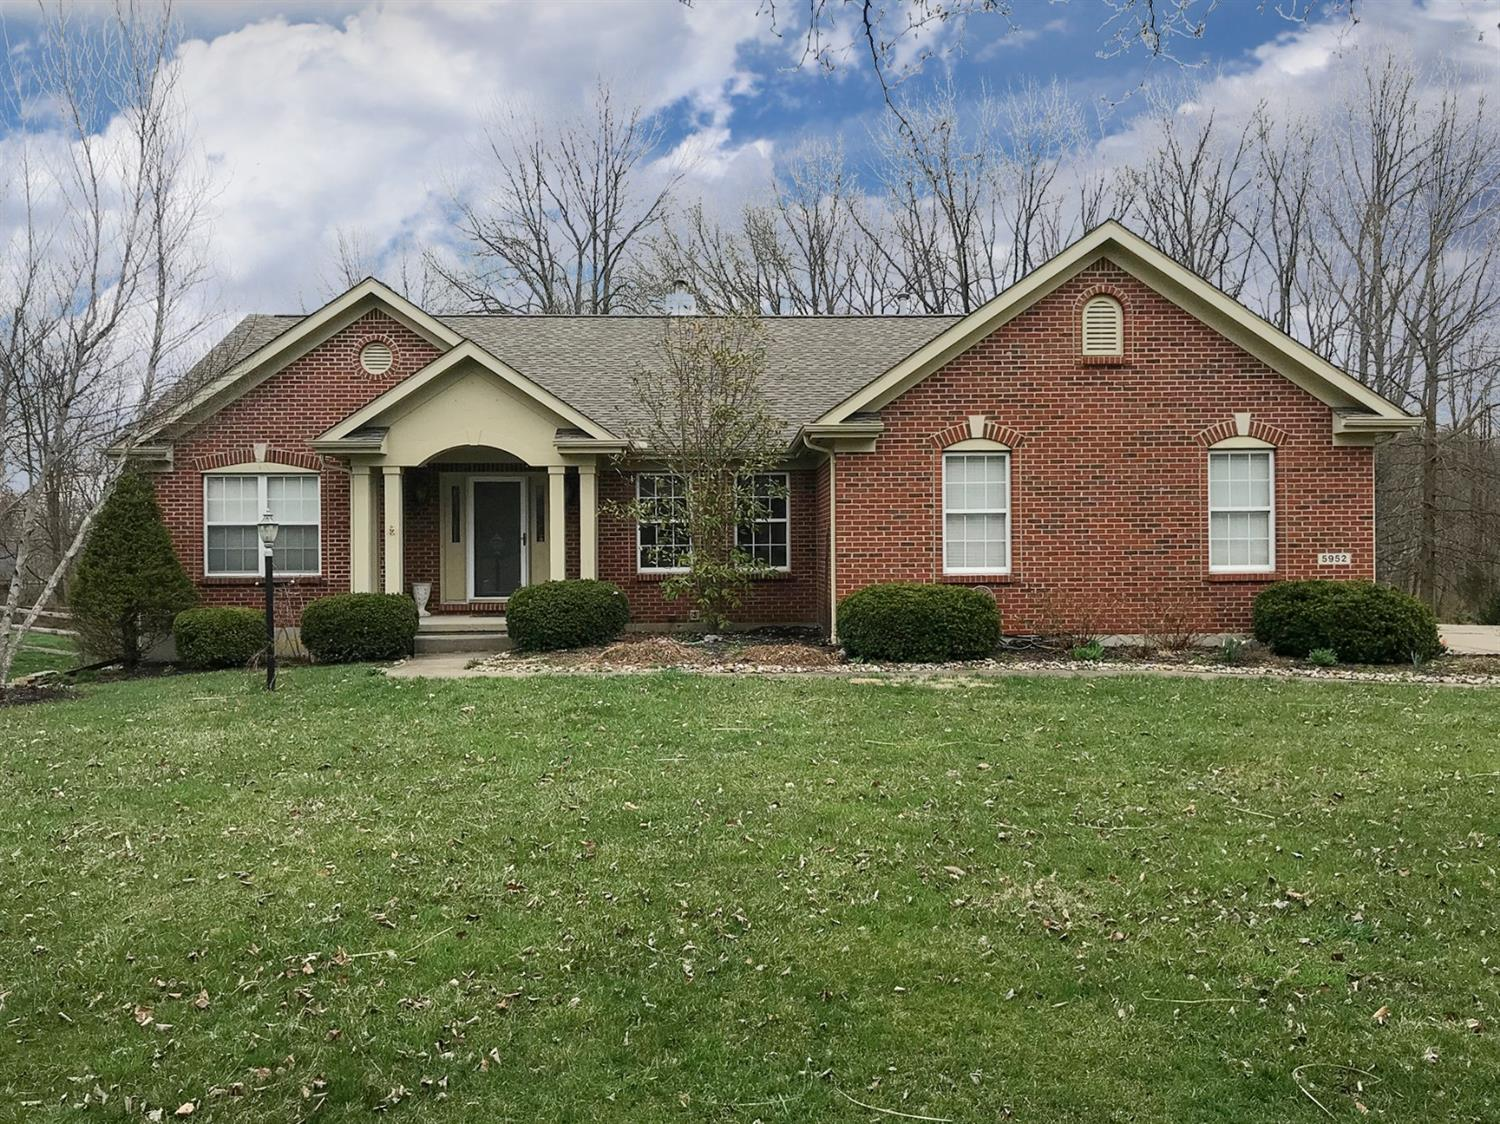 Property for sale at 5952 Wedgwood Drive, Hamilton Twp,  Ohio 45152